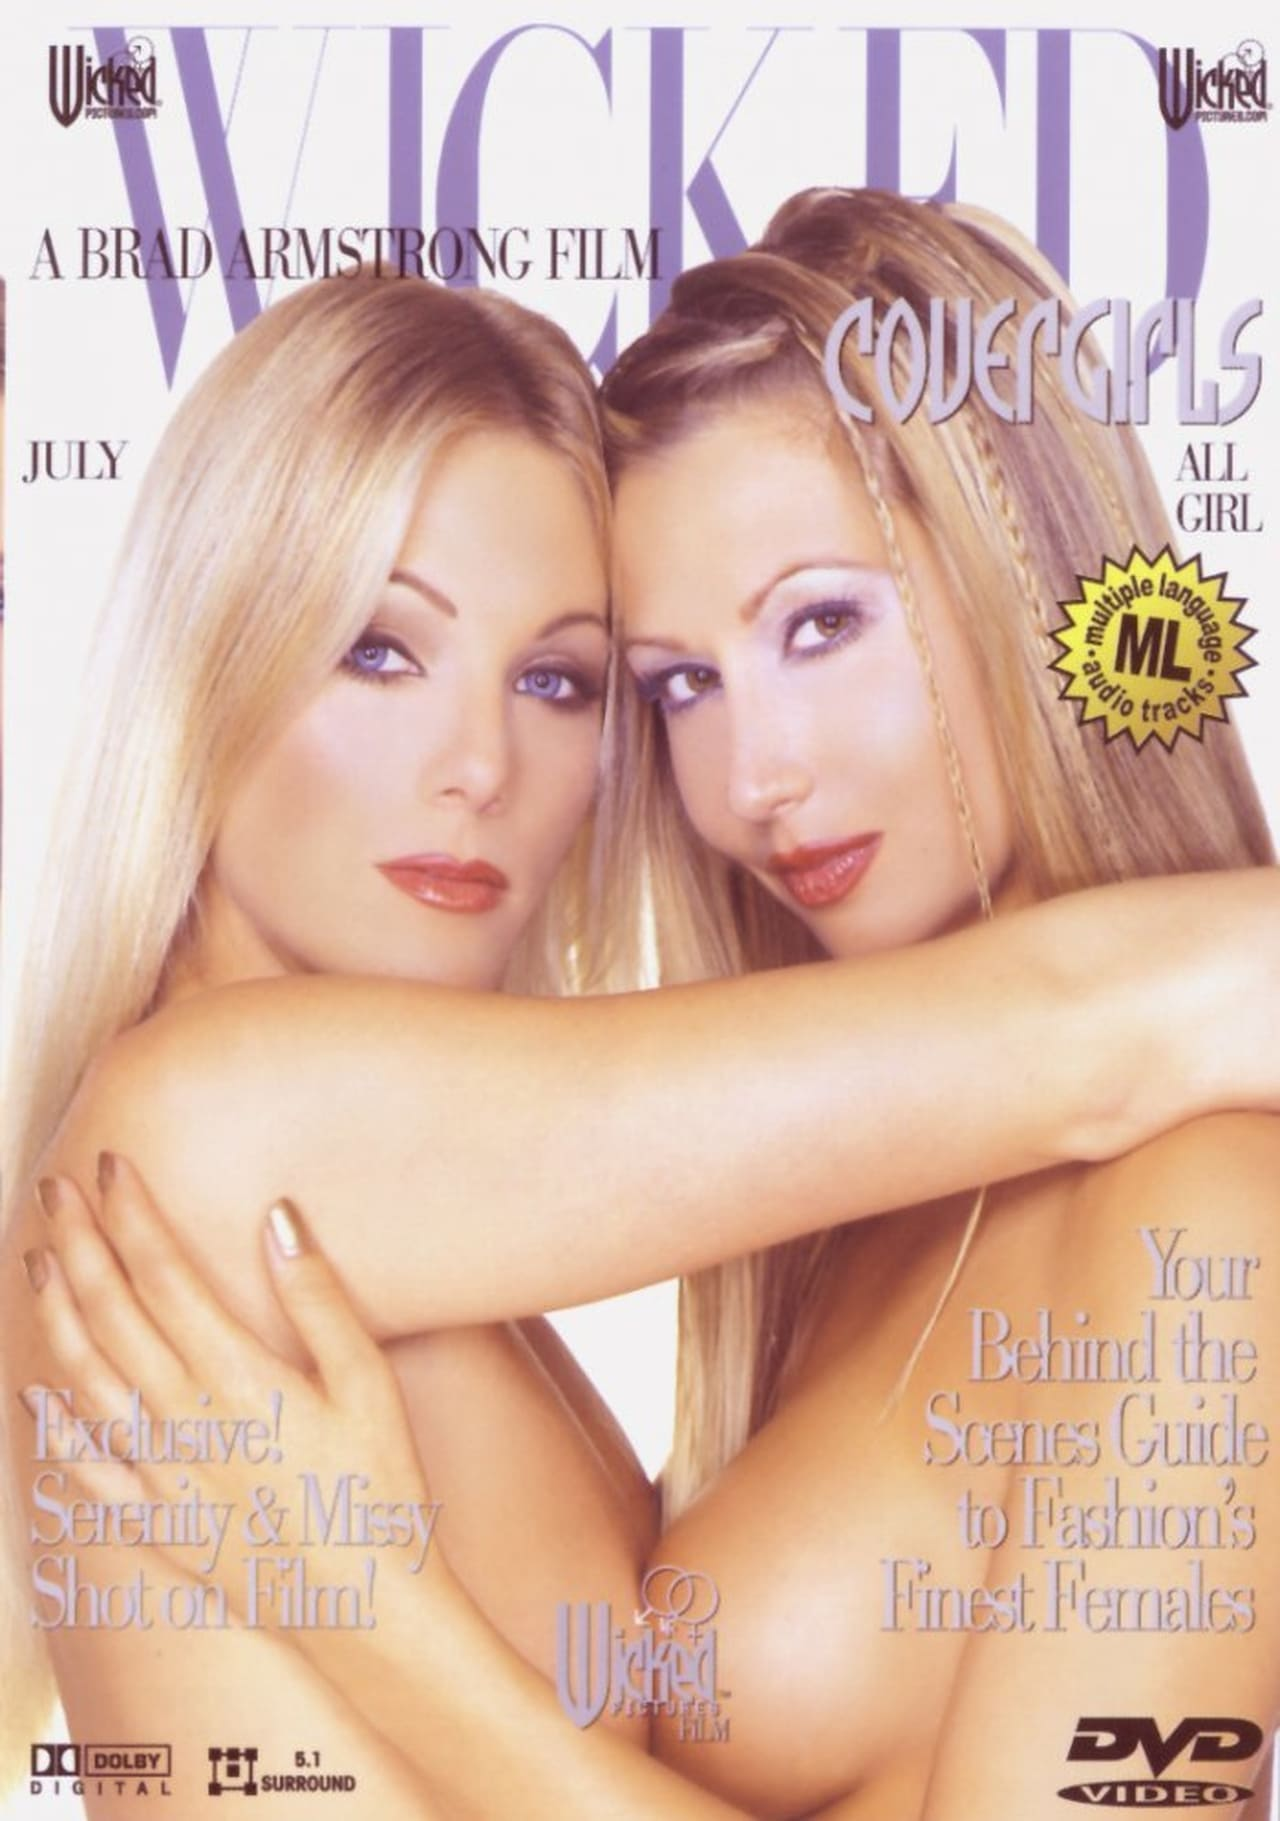 Wicked Covergirls